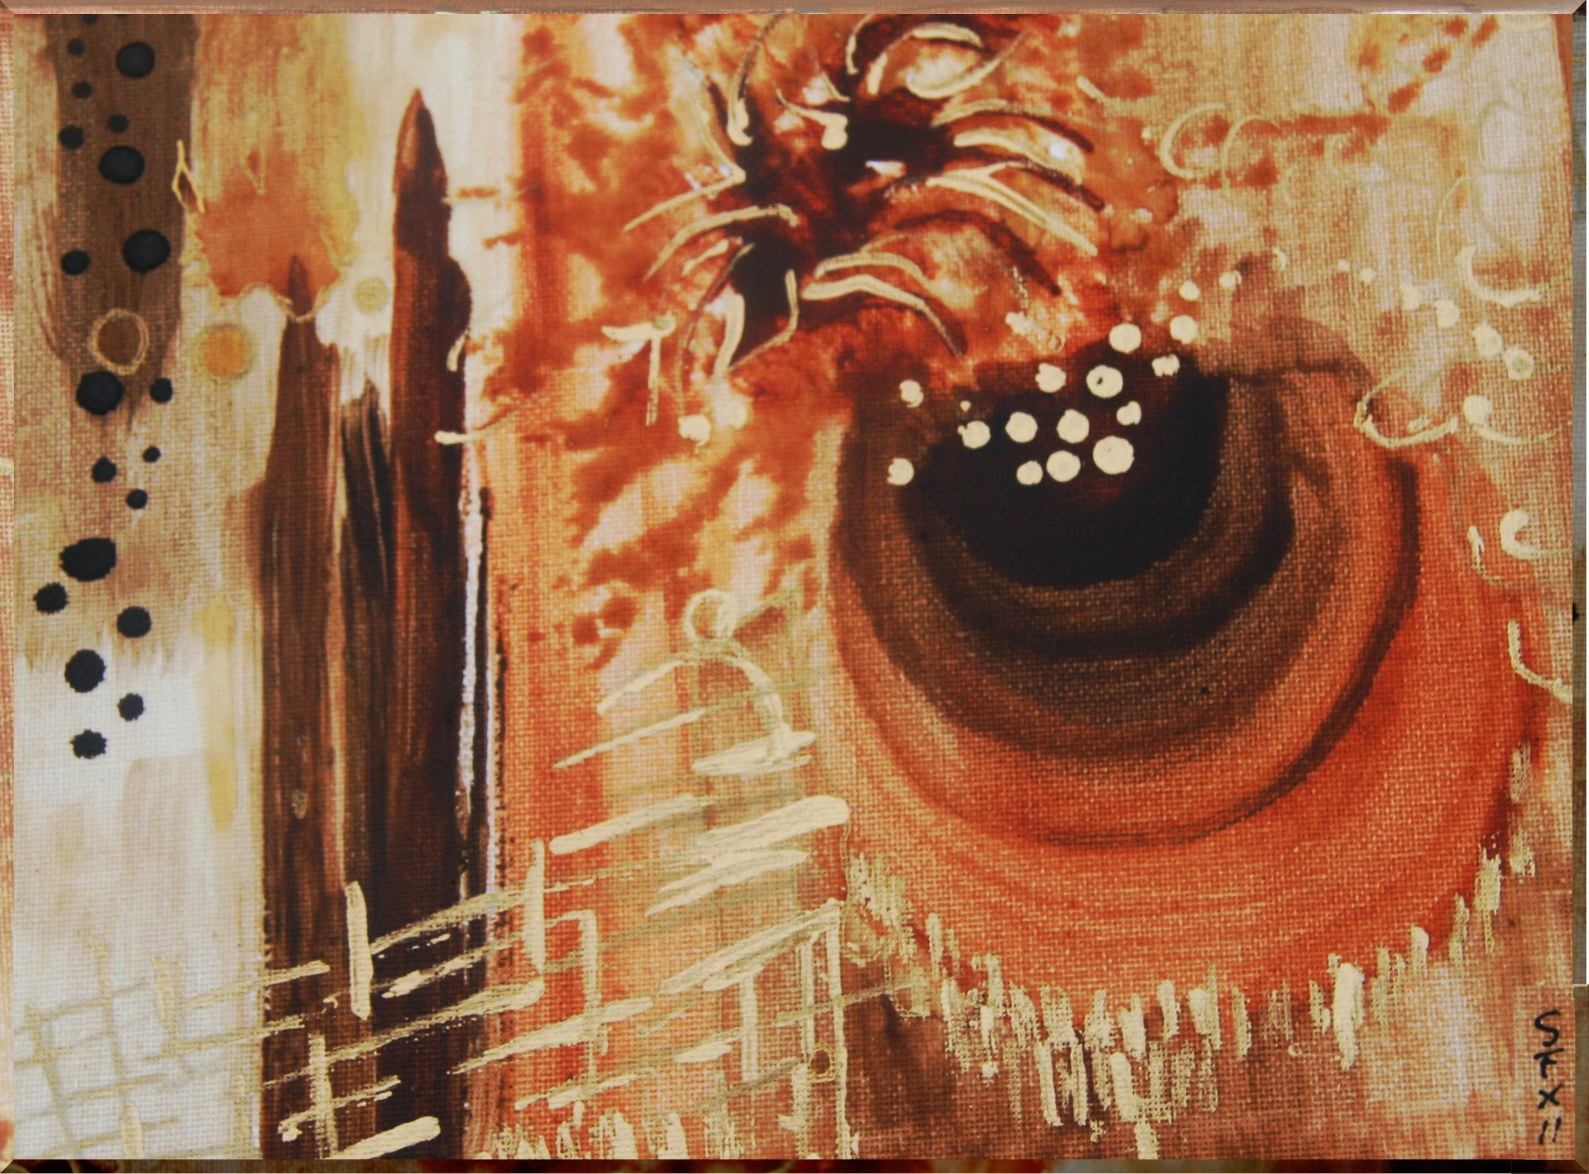 Abstract painting in golden and brown tones